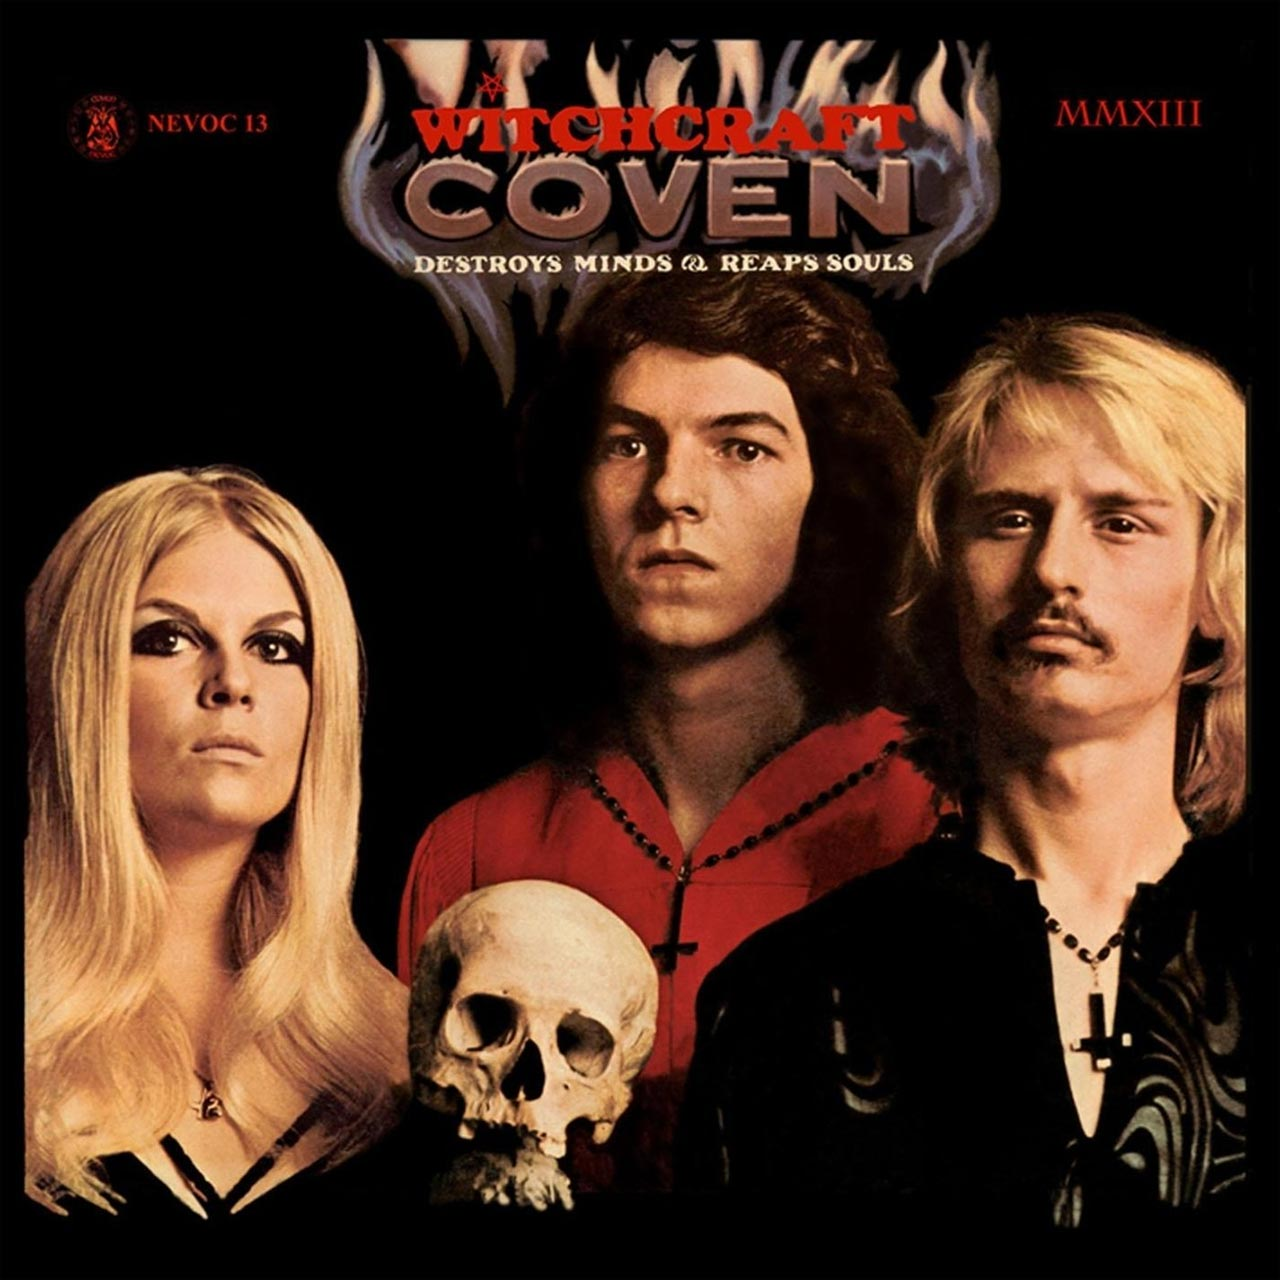 Music Review: Coven - Witchcraft Destroys Minds and Reaps Souls - Akarma